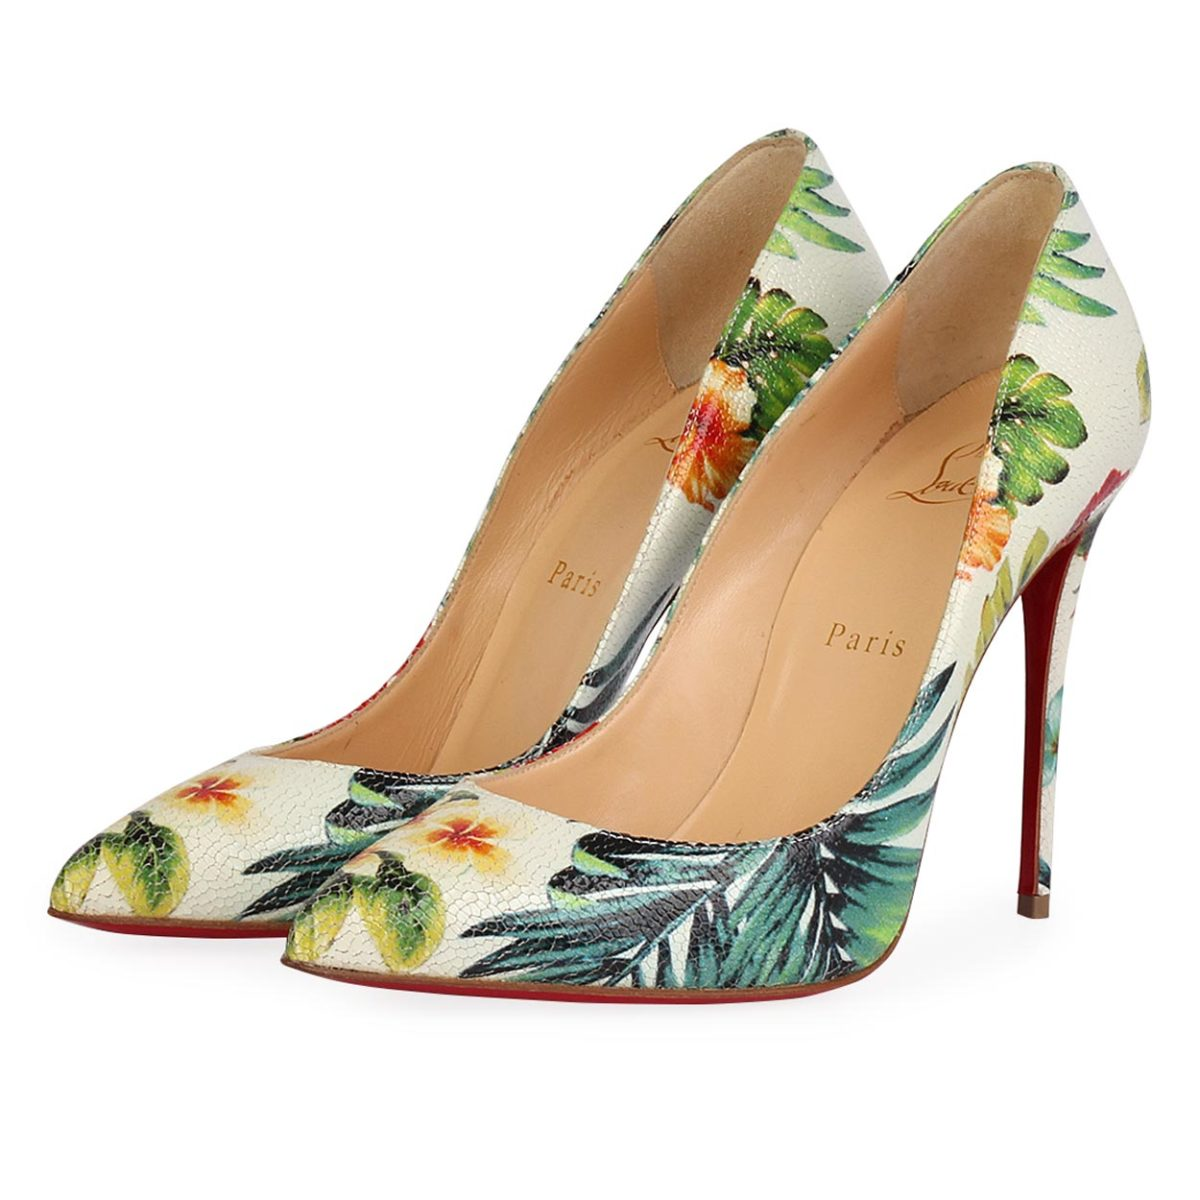 best service ed319 433cd CHRISTIAN LOUBOUTIN Leather Hawaii So Kate 100 Pumps Floral - S: 38 (5) -  NEW